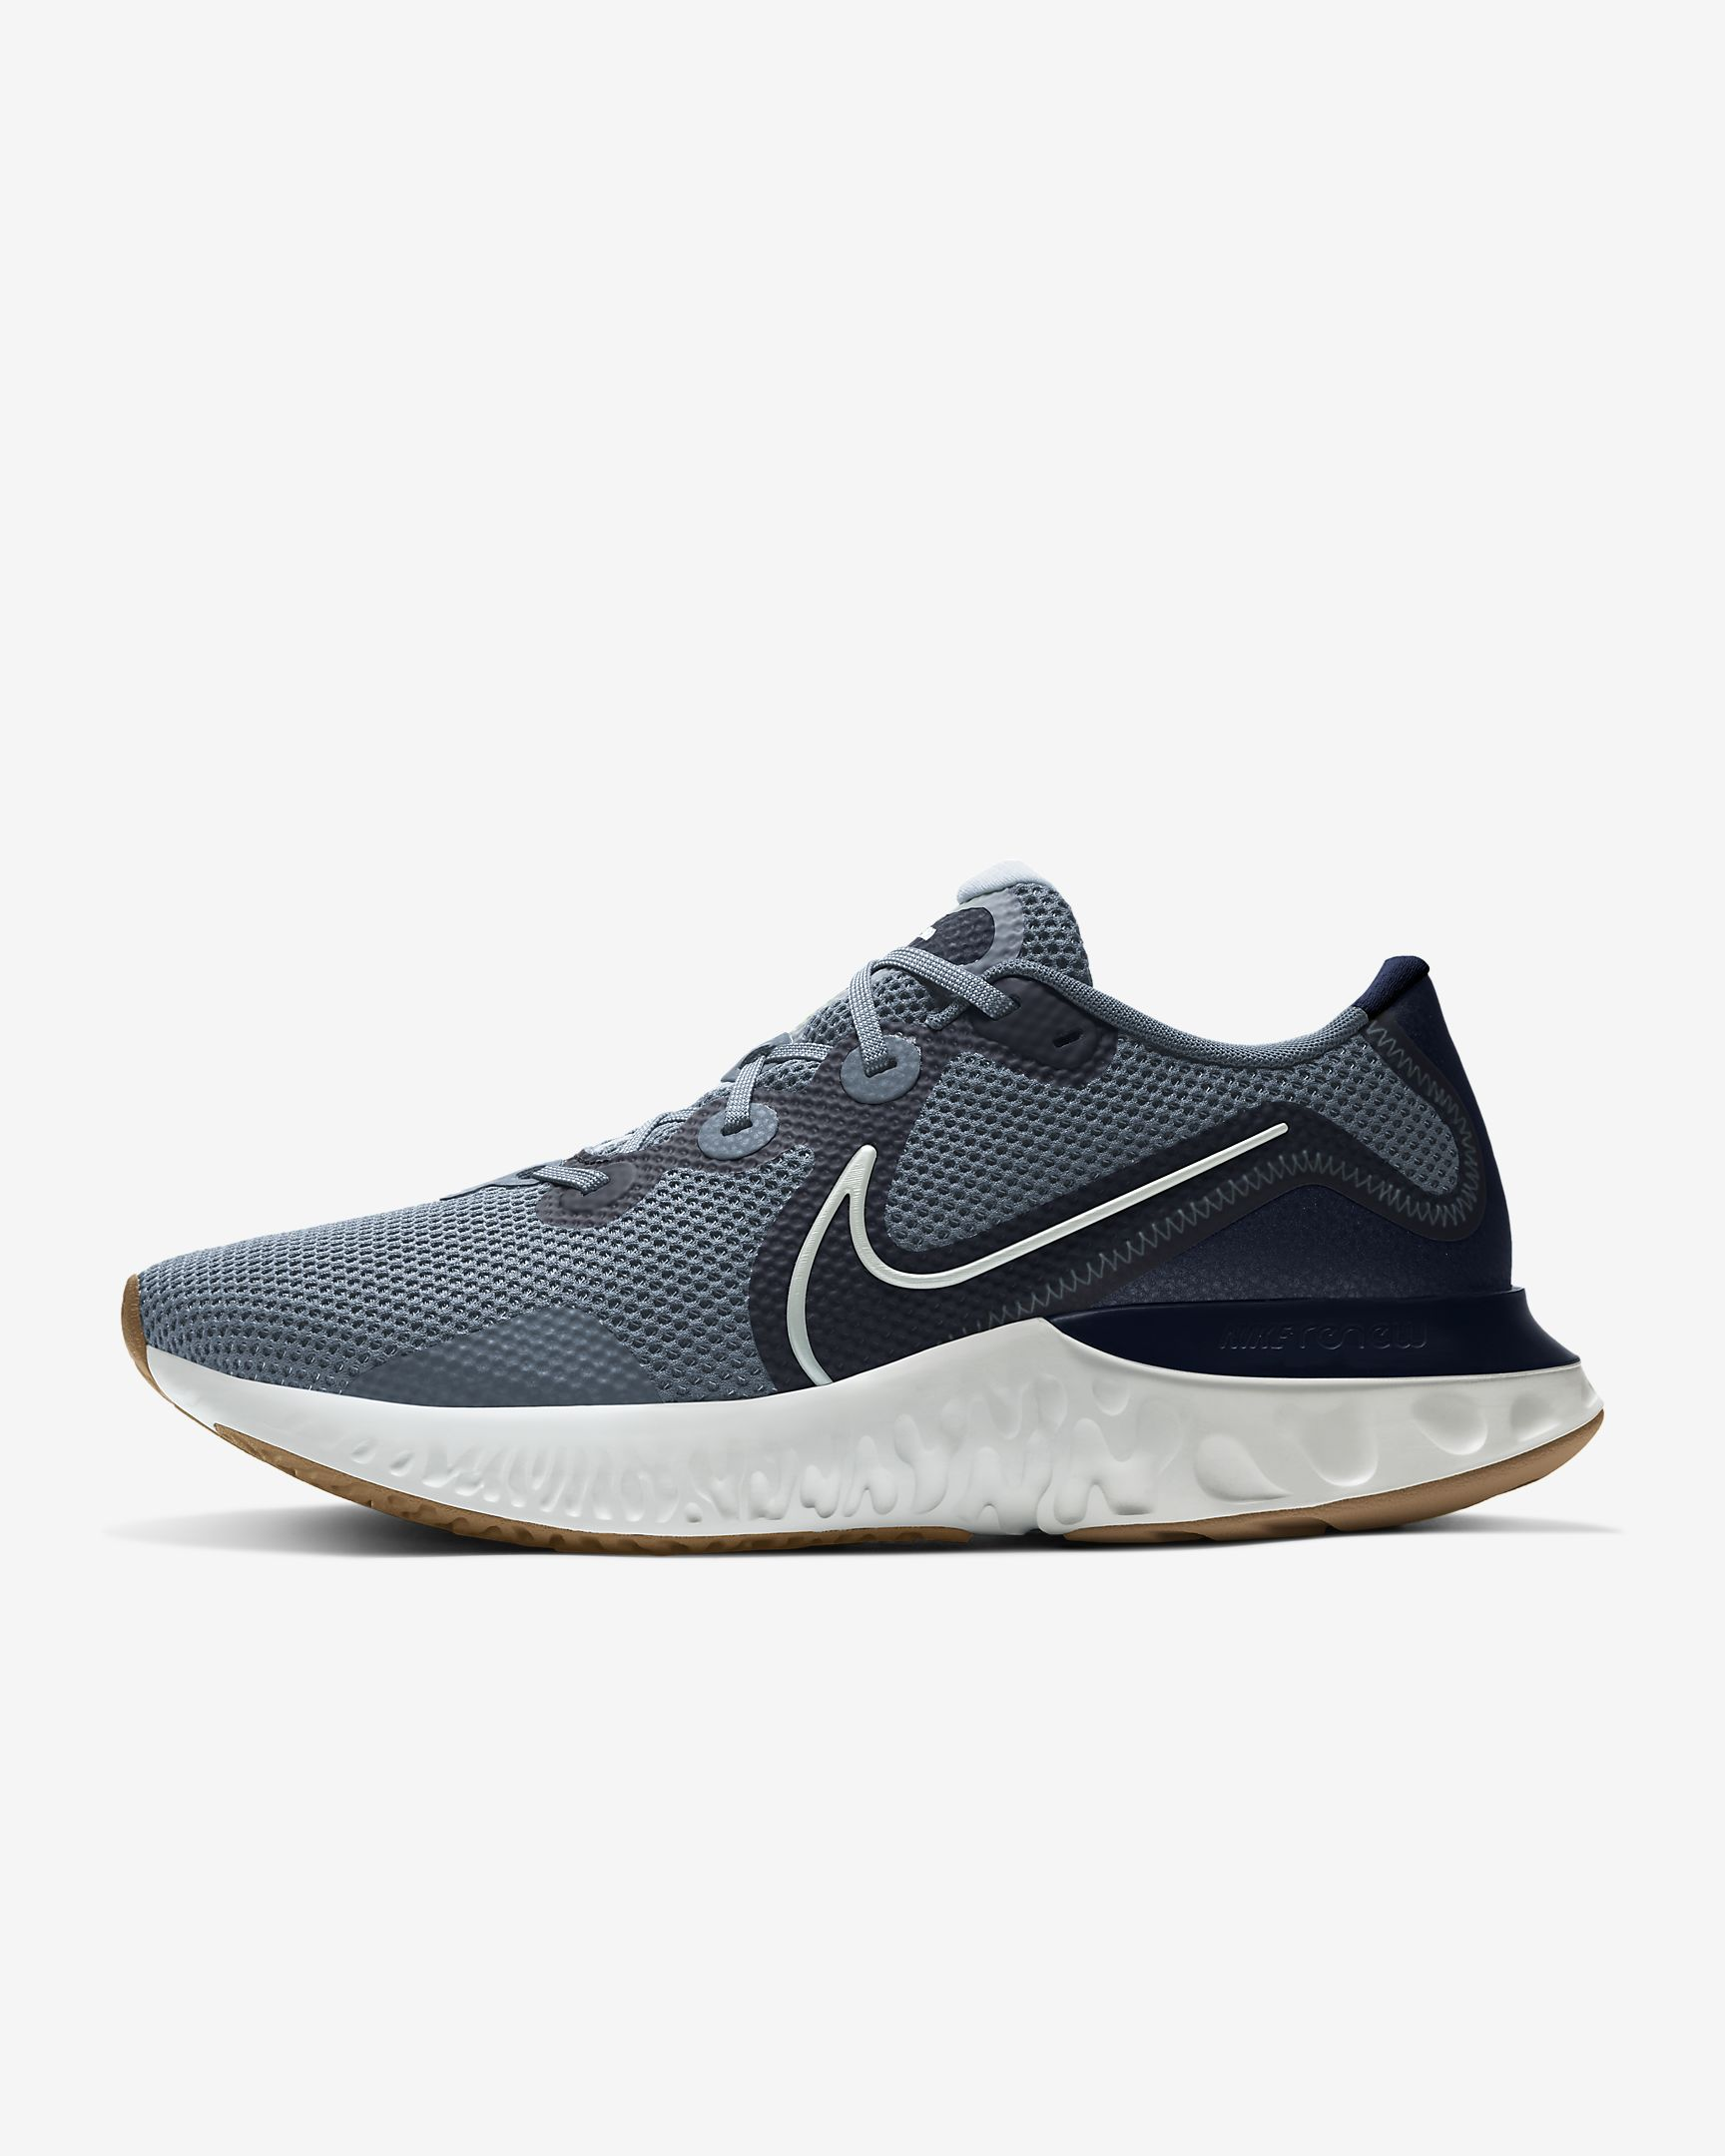 Nike Renew Run - Ozone Blue/Photon Dust-Obsidian SP-Footwear-Mens Nike